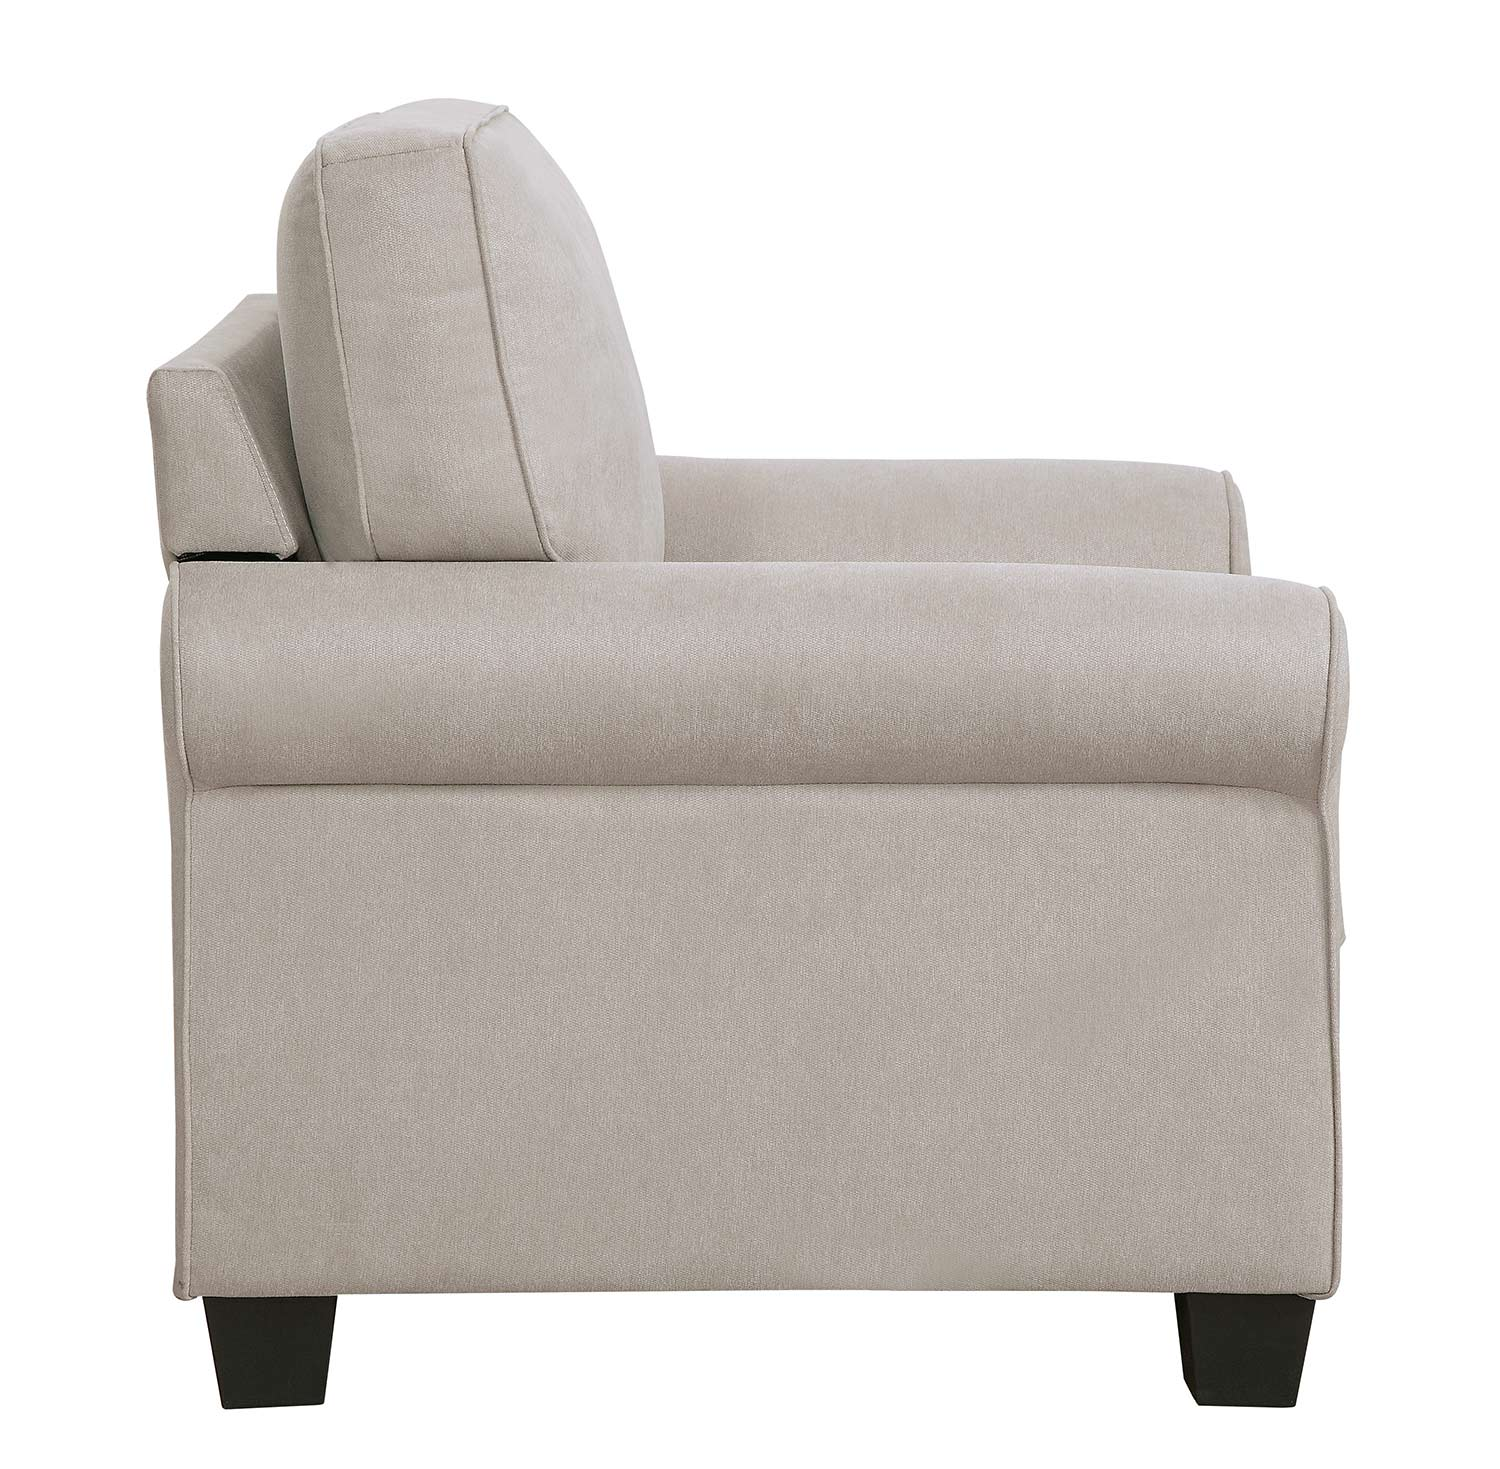 Homelegance Selkirk Chair - Sand Fabric